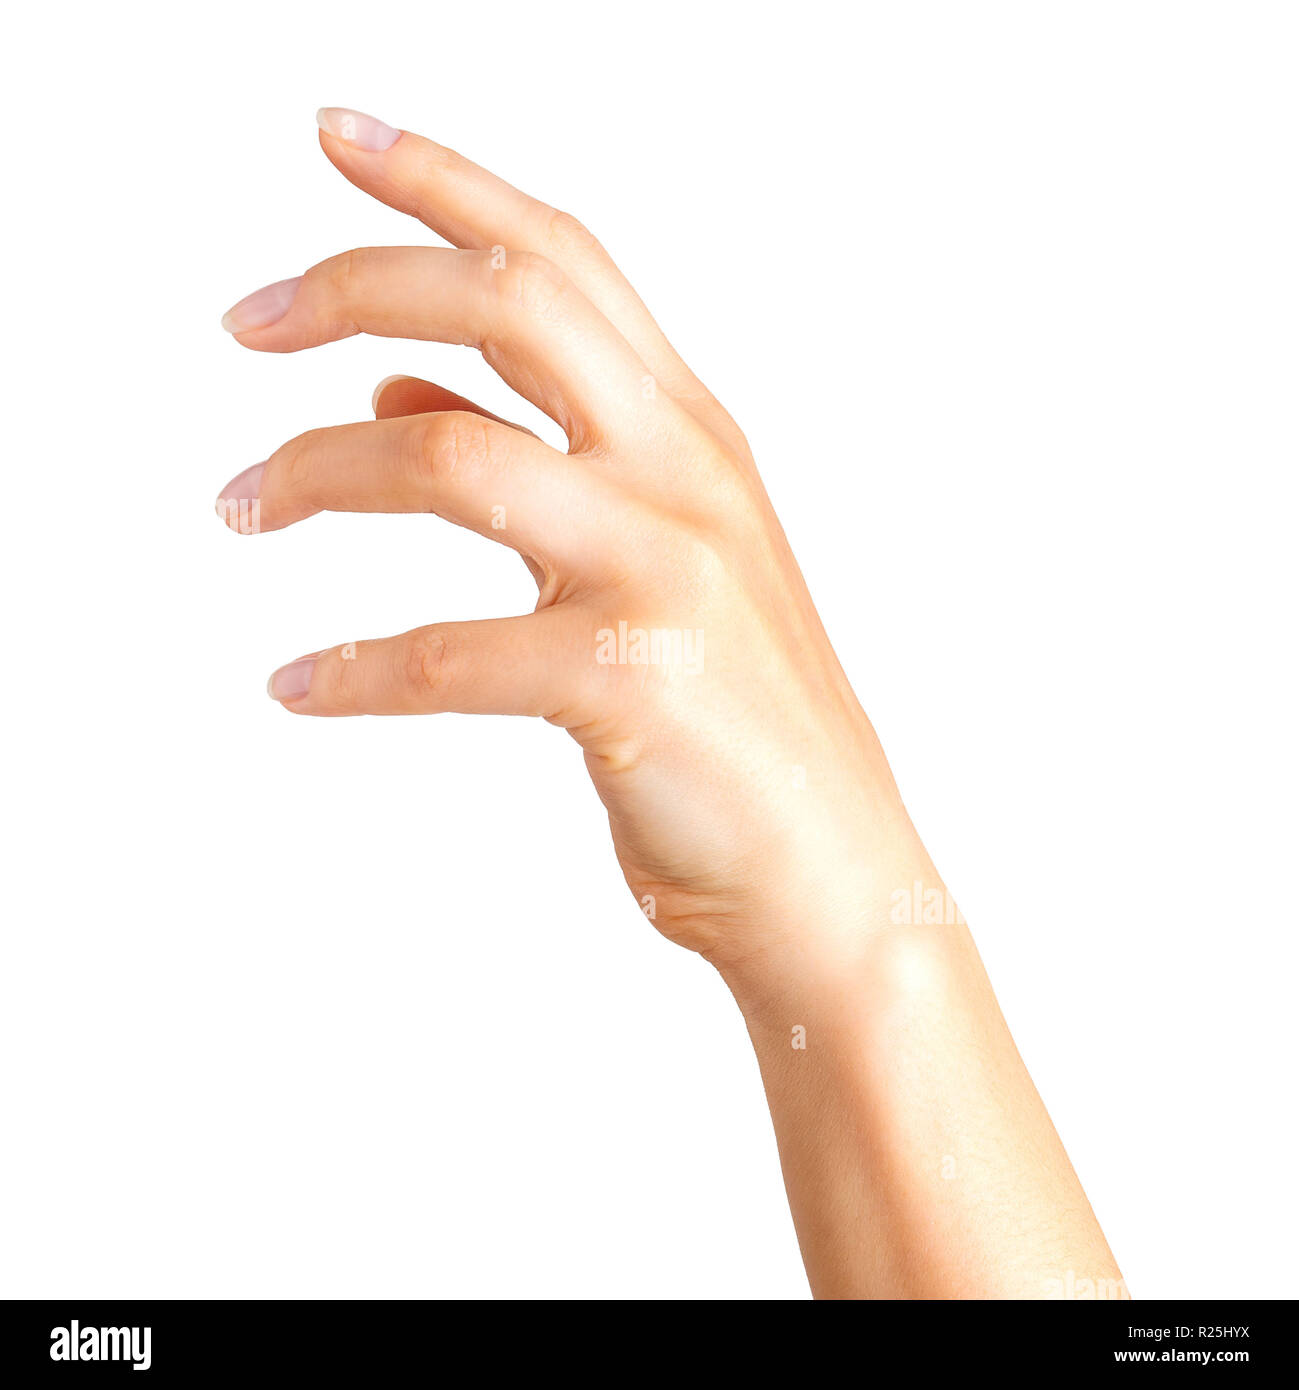 Woman hand with crooked fingers showing magic trick or holding ball - Stock Image